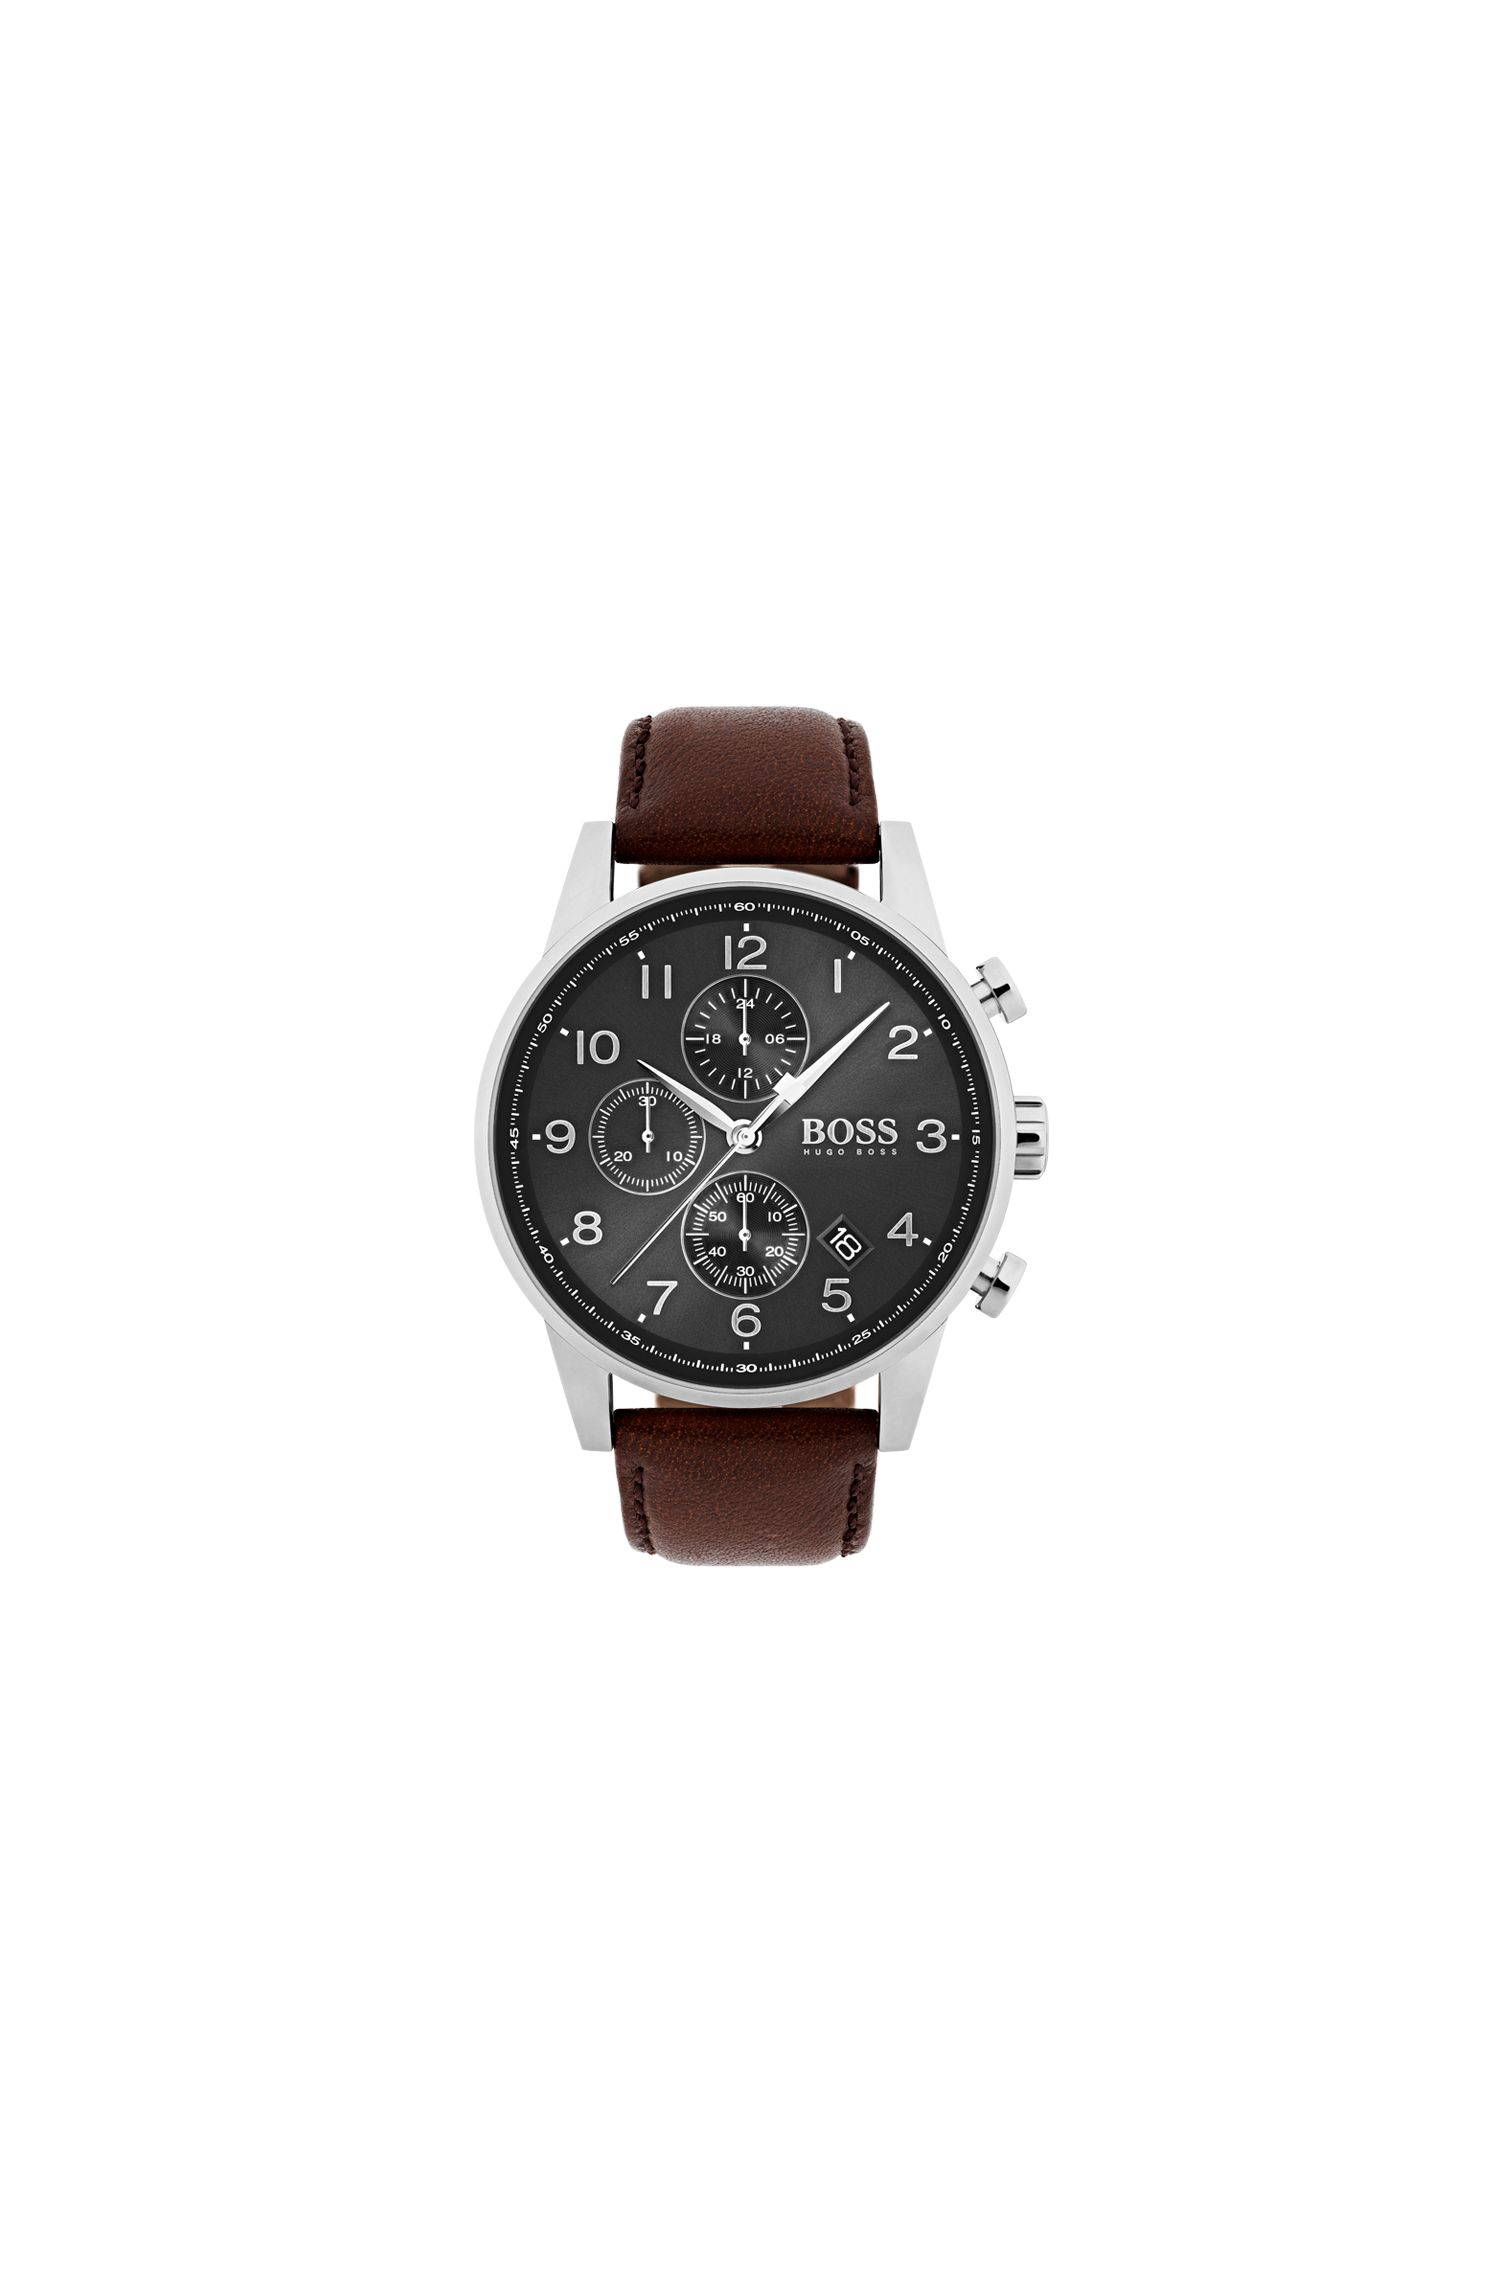 Polished stainless-steel chronograph watch with brown leather strap